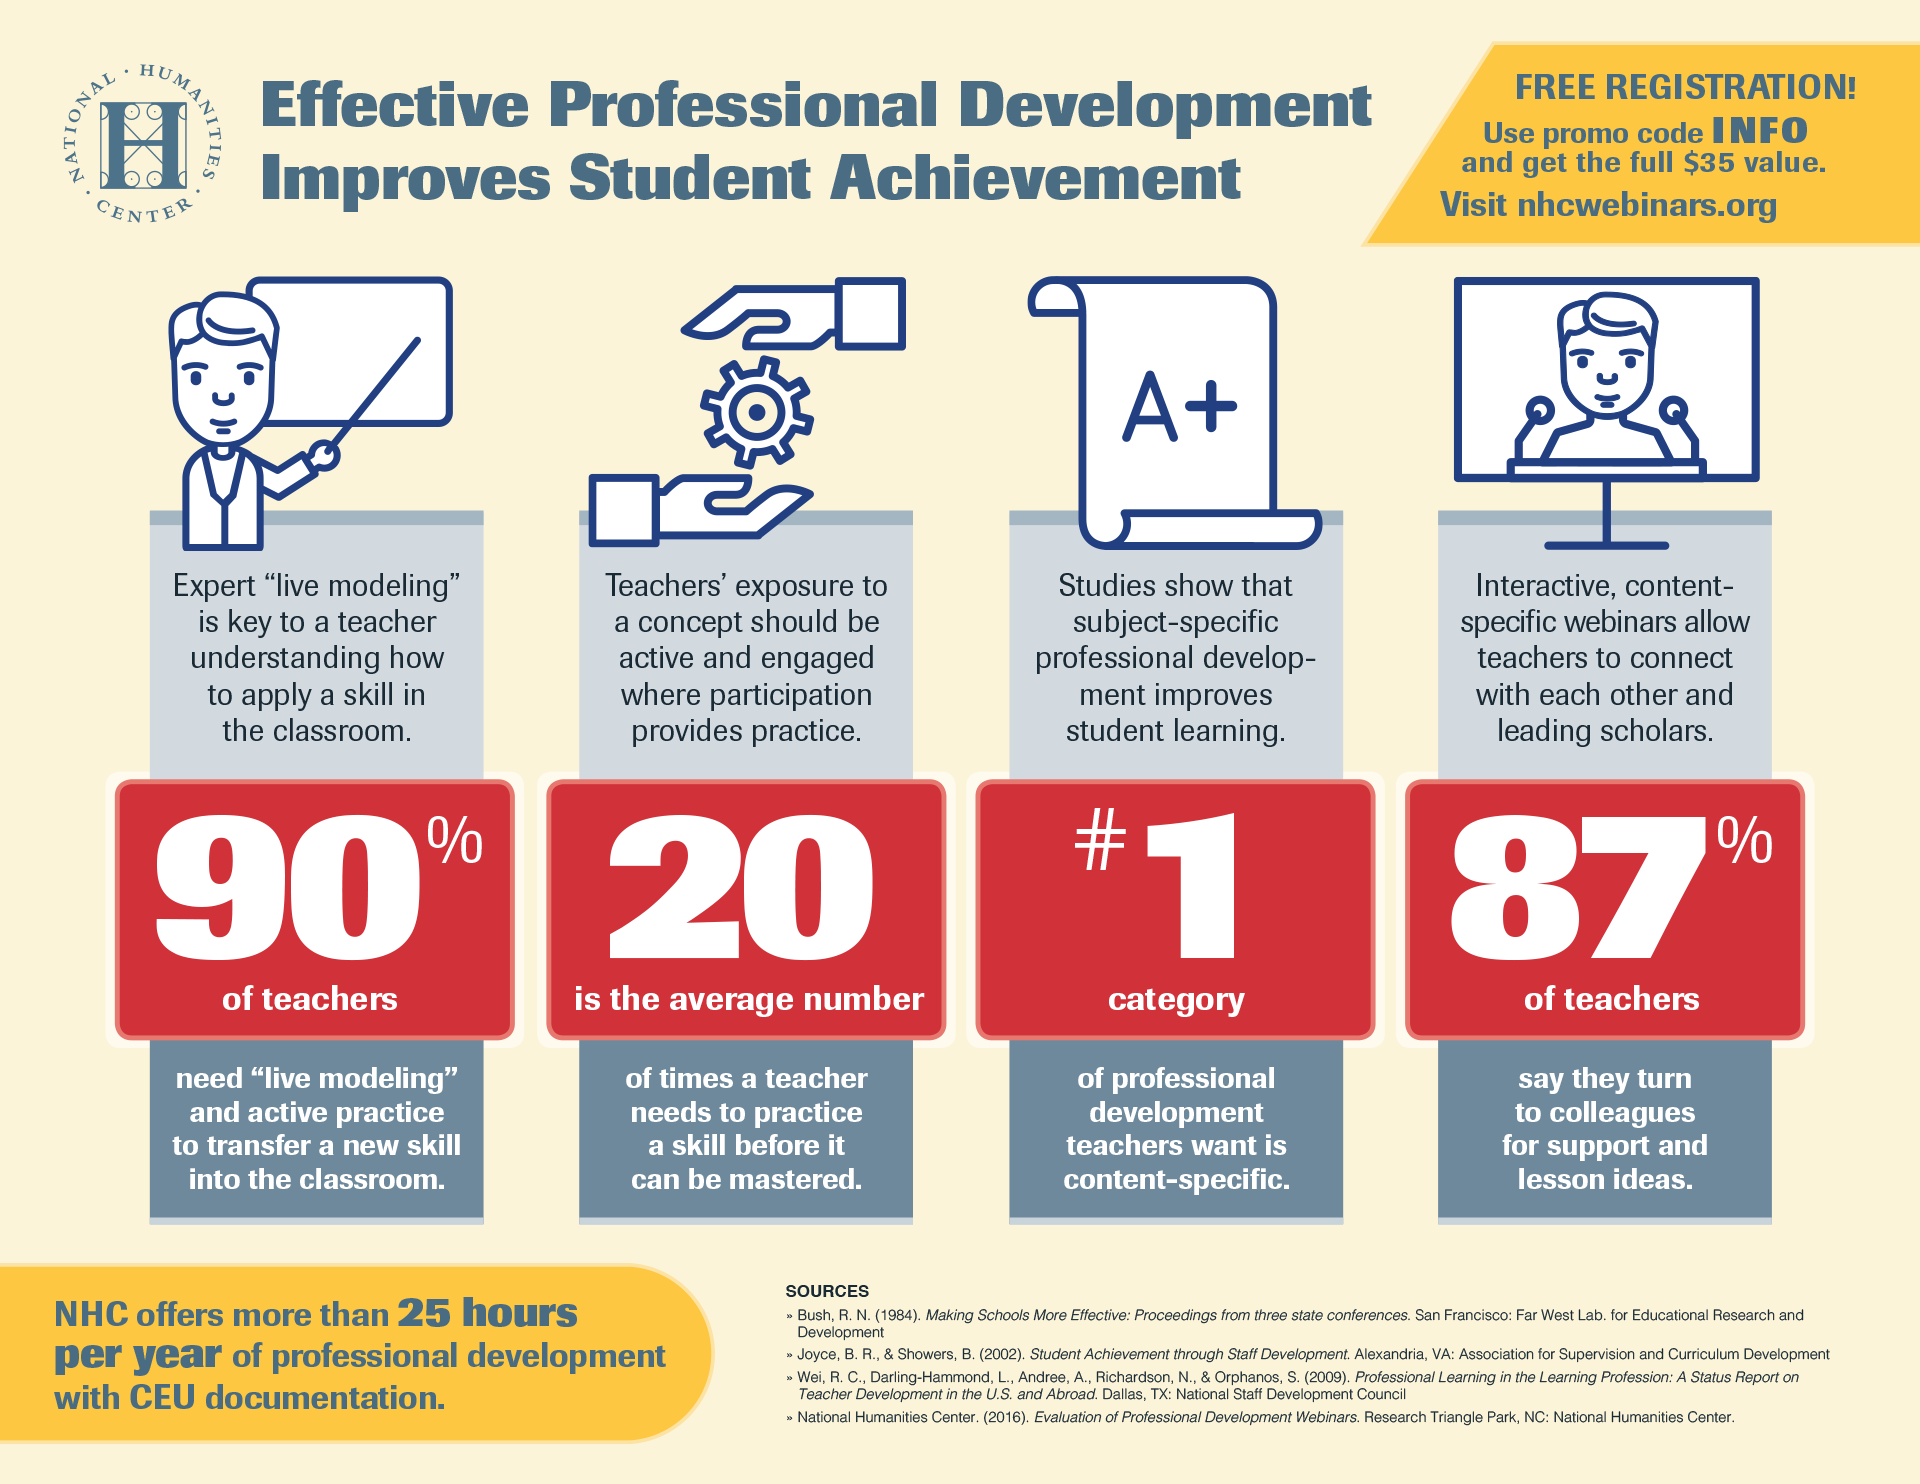 Effective Professional Development Improves Student Achievement